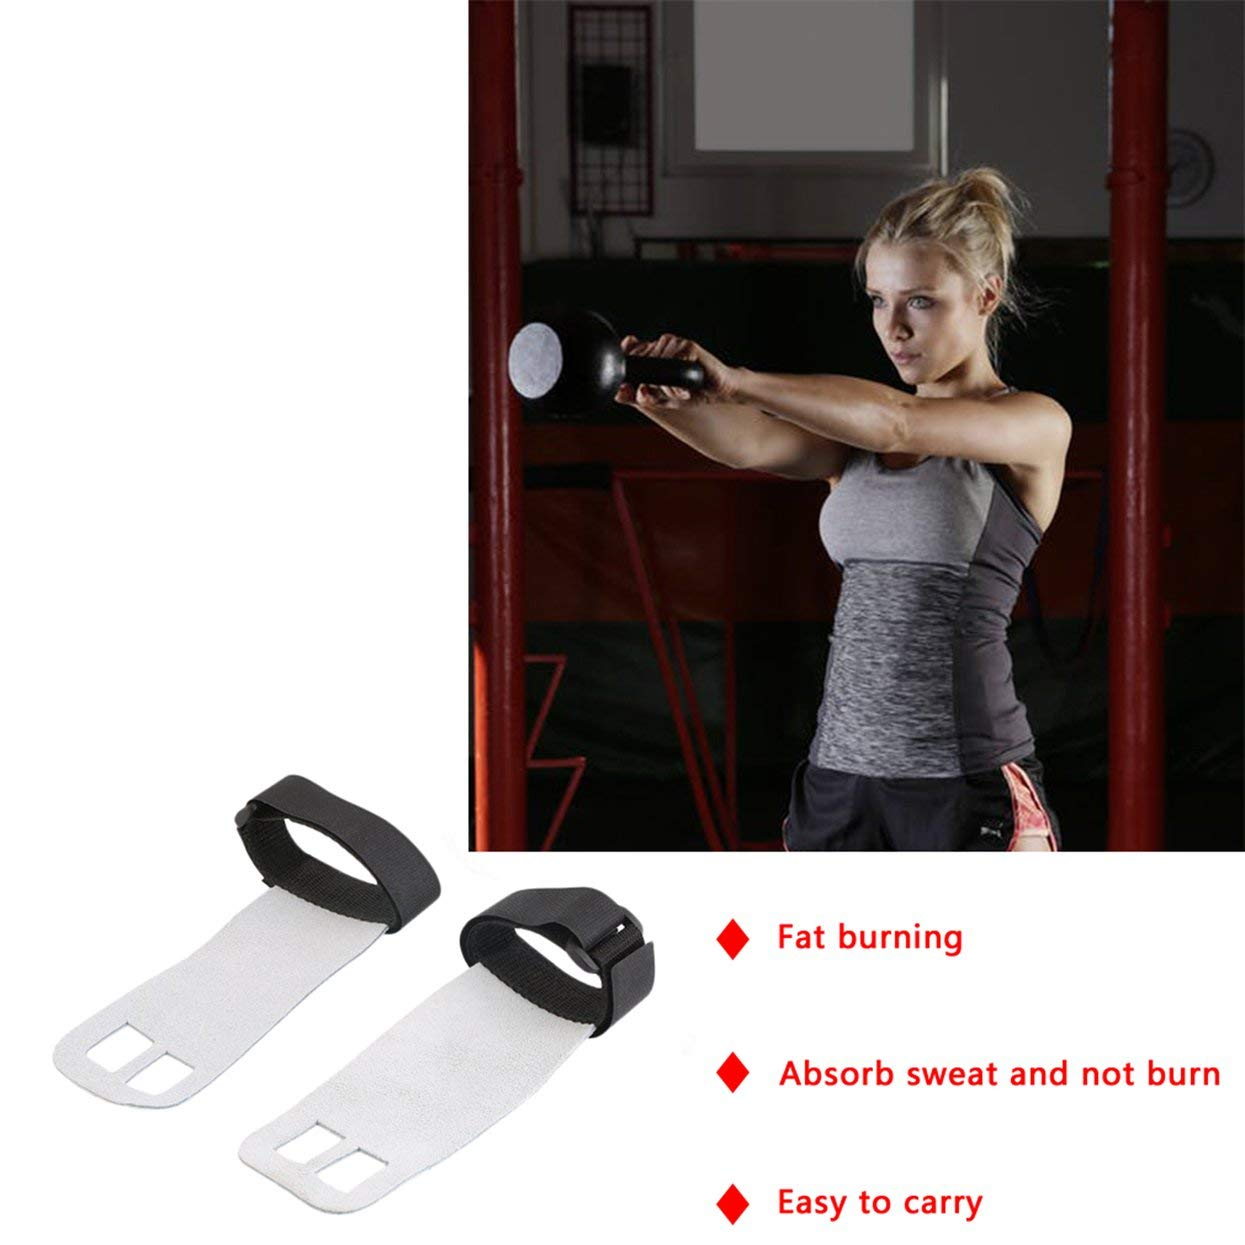 Detectorcatty Crossfit Grips Leather Palm Protectors Hand Guards Weight Lifting Barbell Grips Gym Glove Pull up Lift